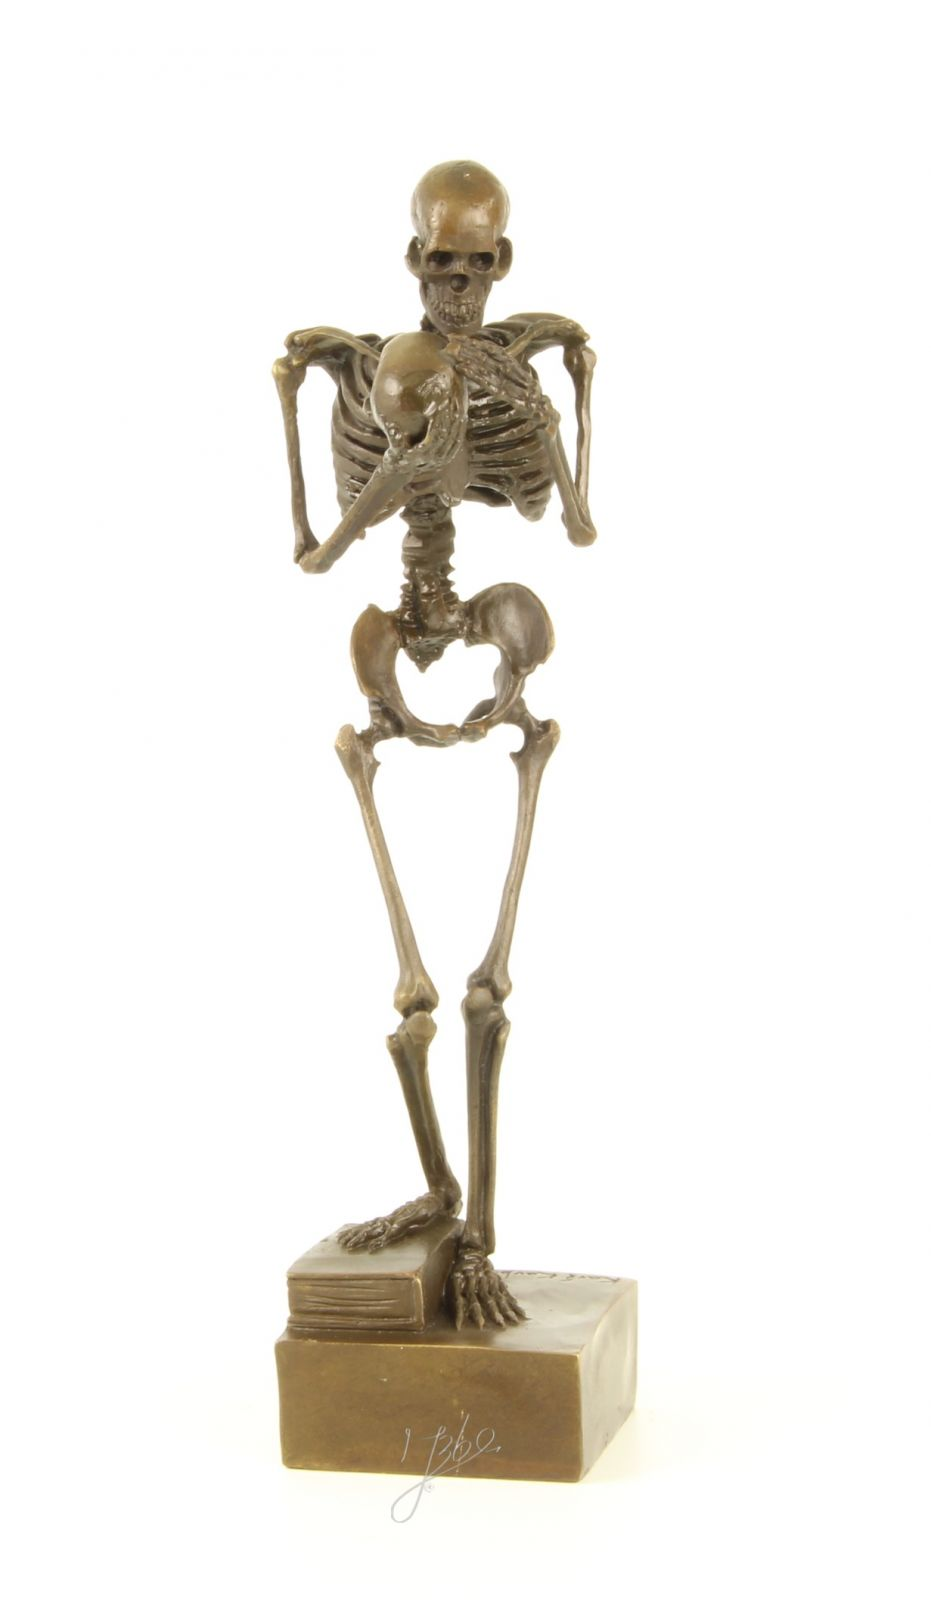 A bronze statue of a skeleton